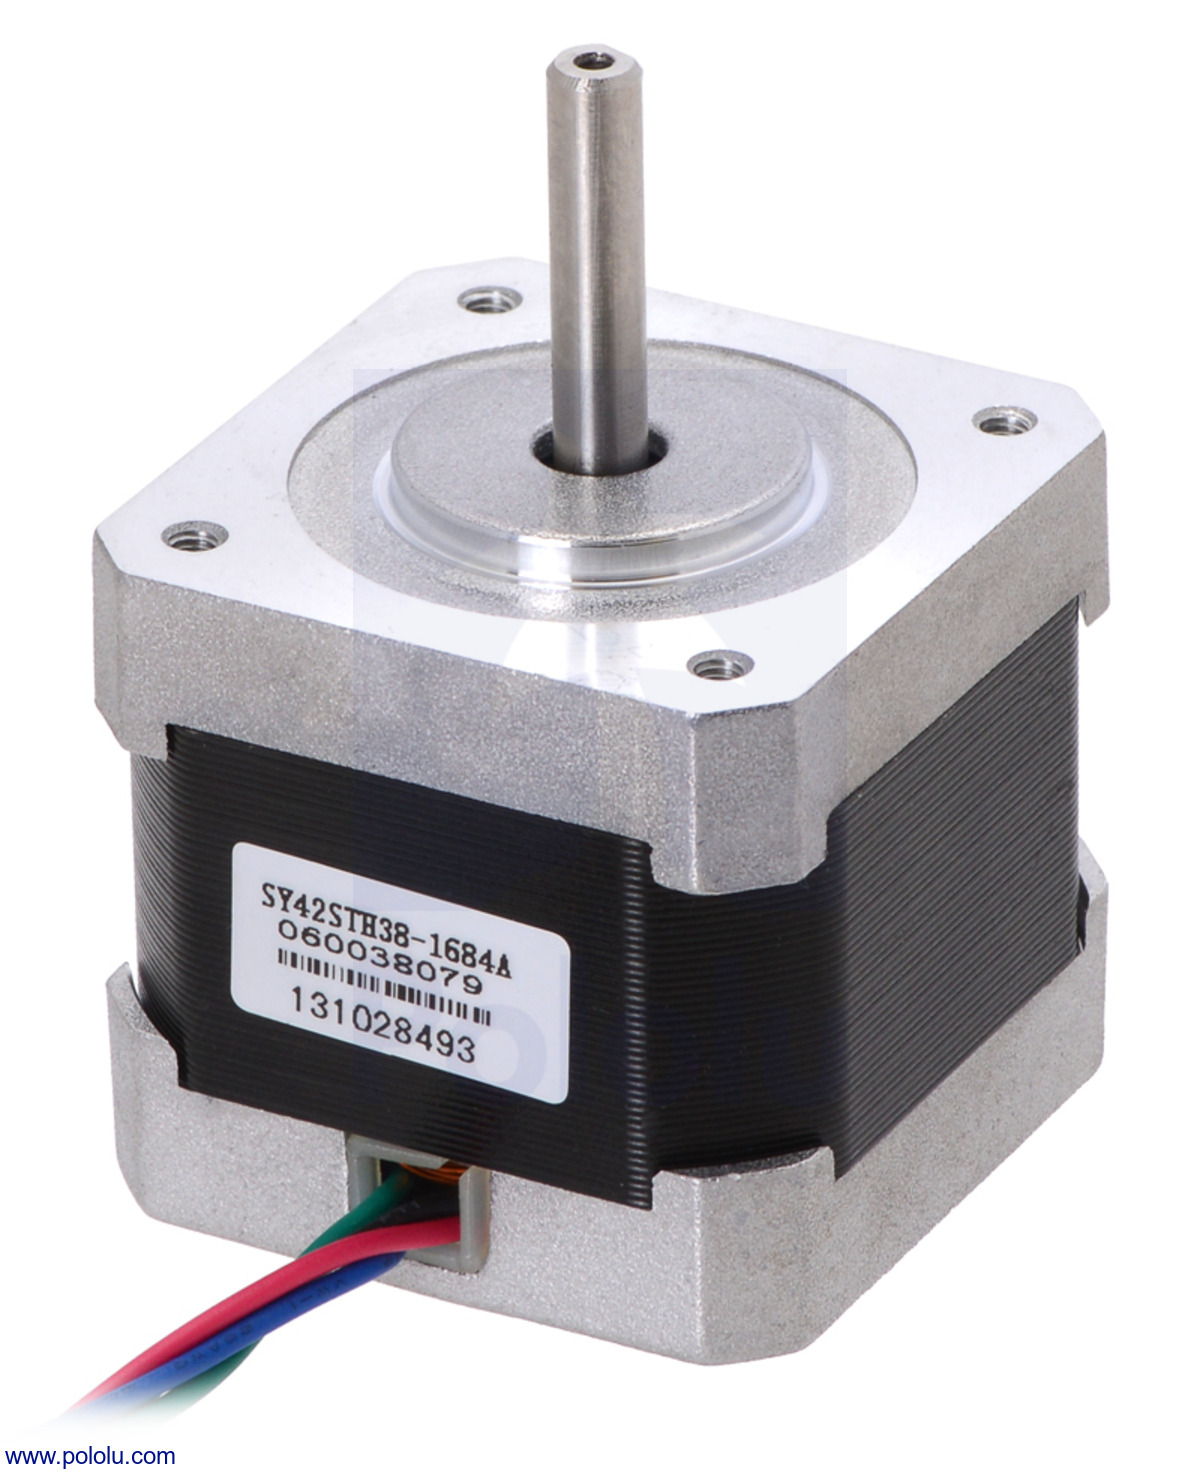 Stepper Motor: Bipolar, 200 Steps/Rev, 42×38mm, 2.8V, 1.7 A/Phase